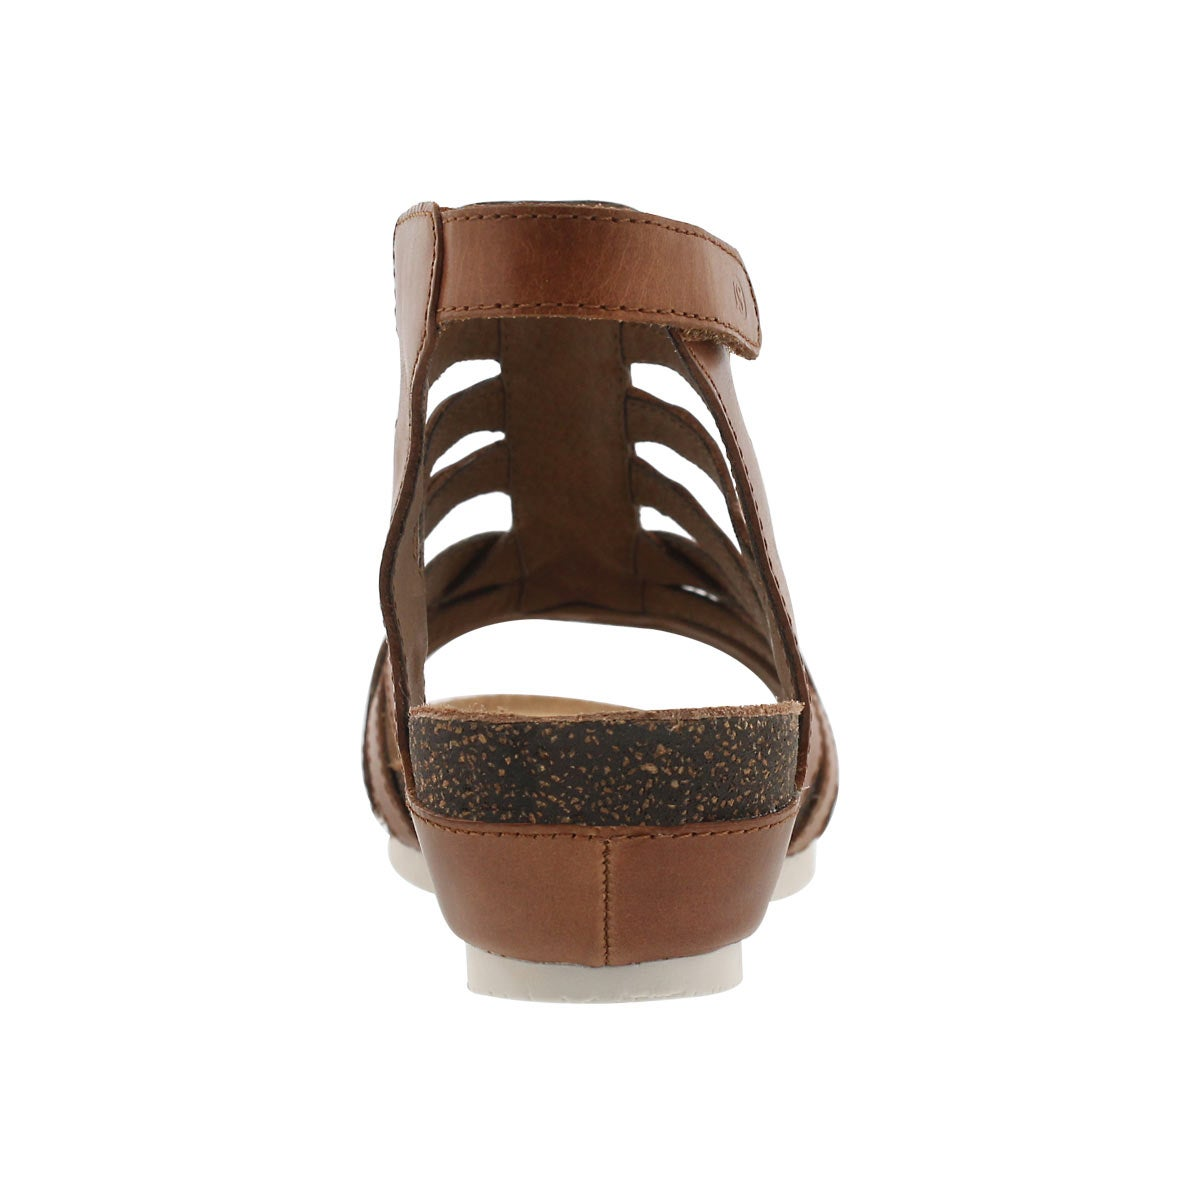 Lds Hailey 17 camel dress wedge sandal